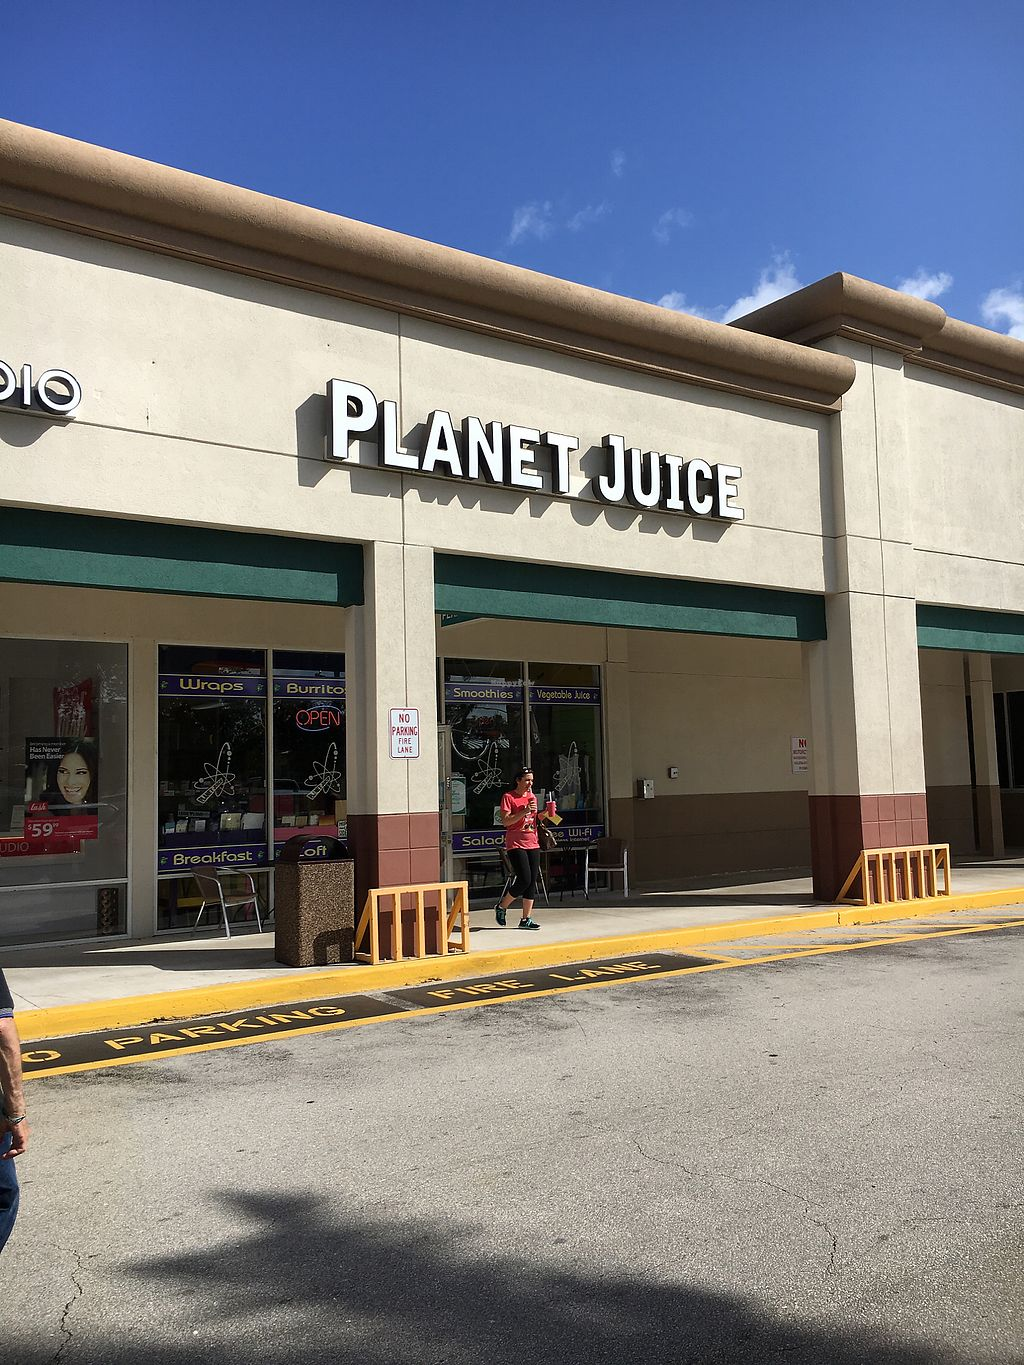 """Photo of Planet Juice  by <a href=""""/members/profile/daroff"""">daroff</a> <br/>Storefront <br/> October 24, 2017  - <a href='/contact/abuse/image/103492/318451'>Report</a>"""